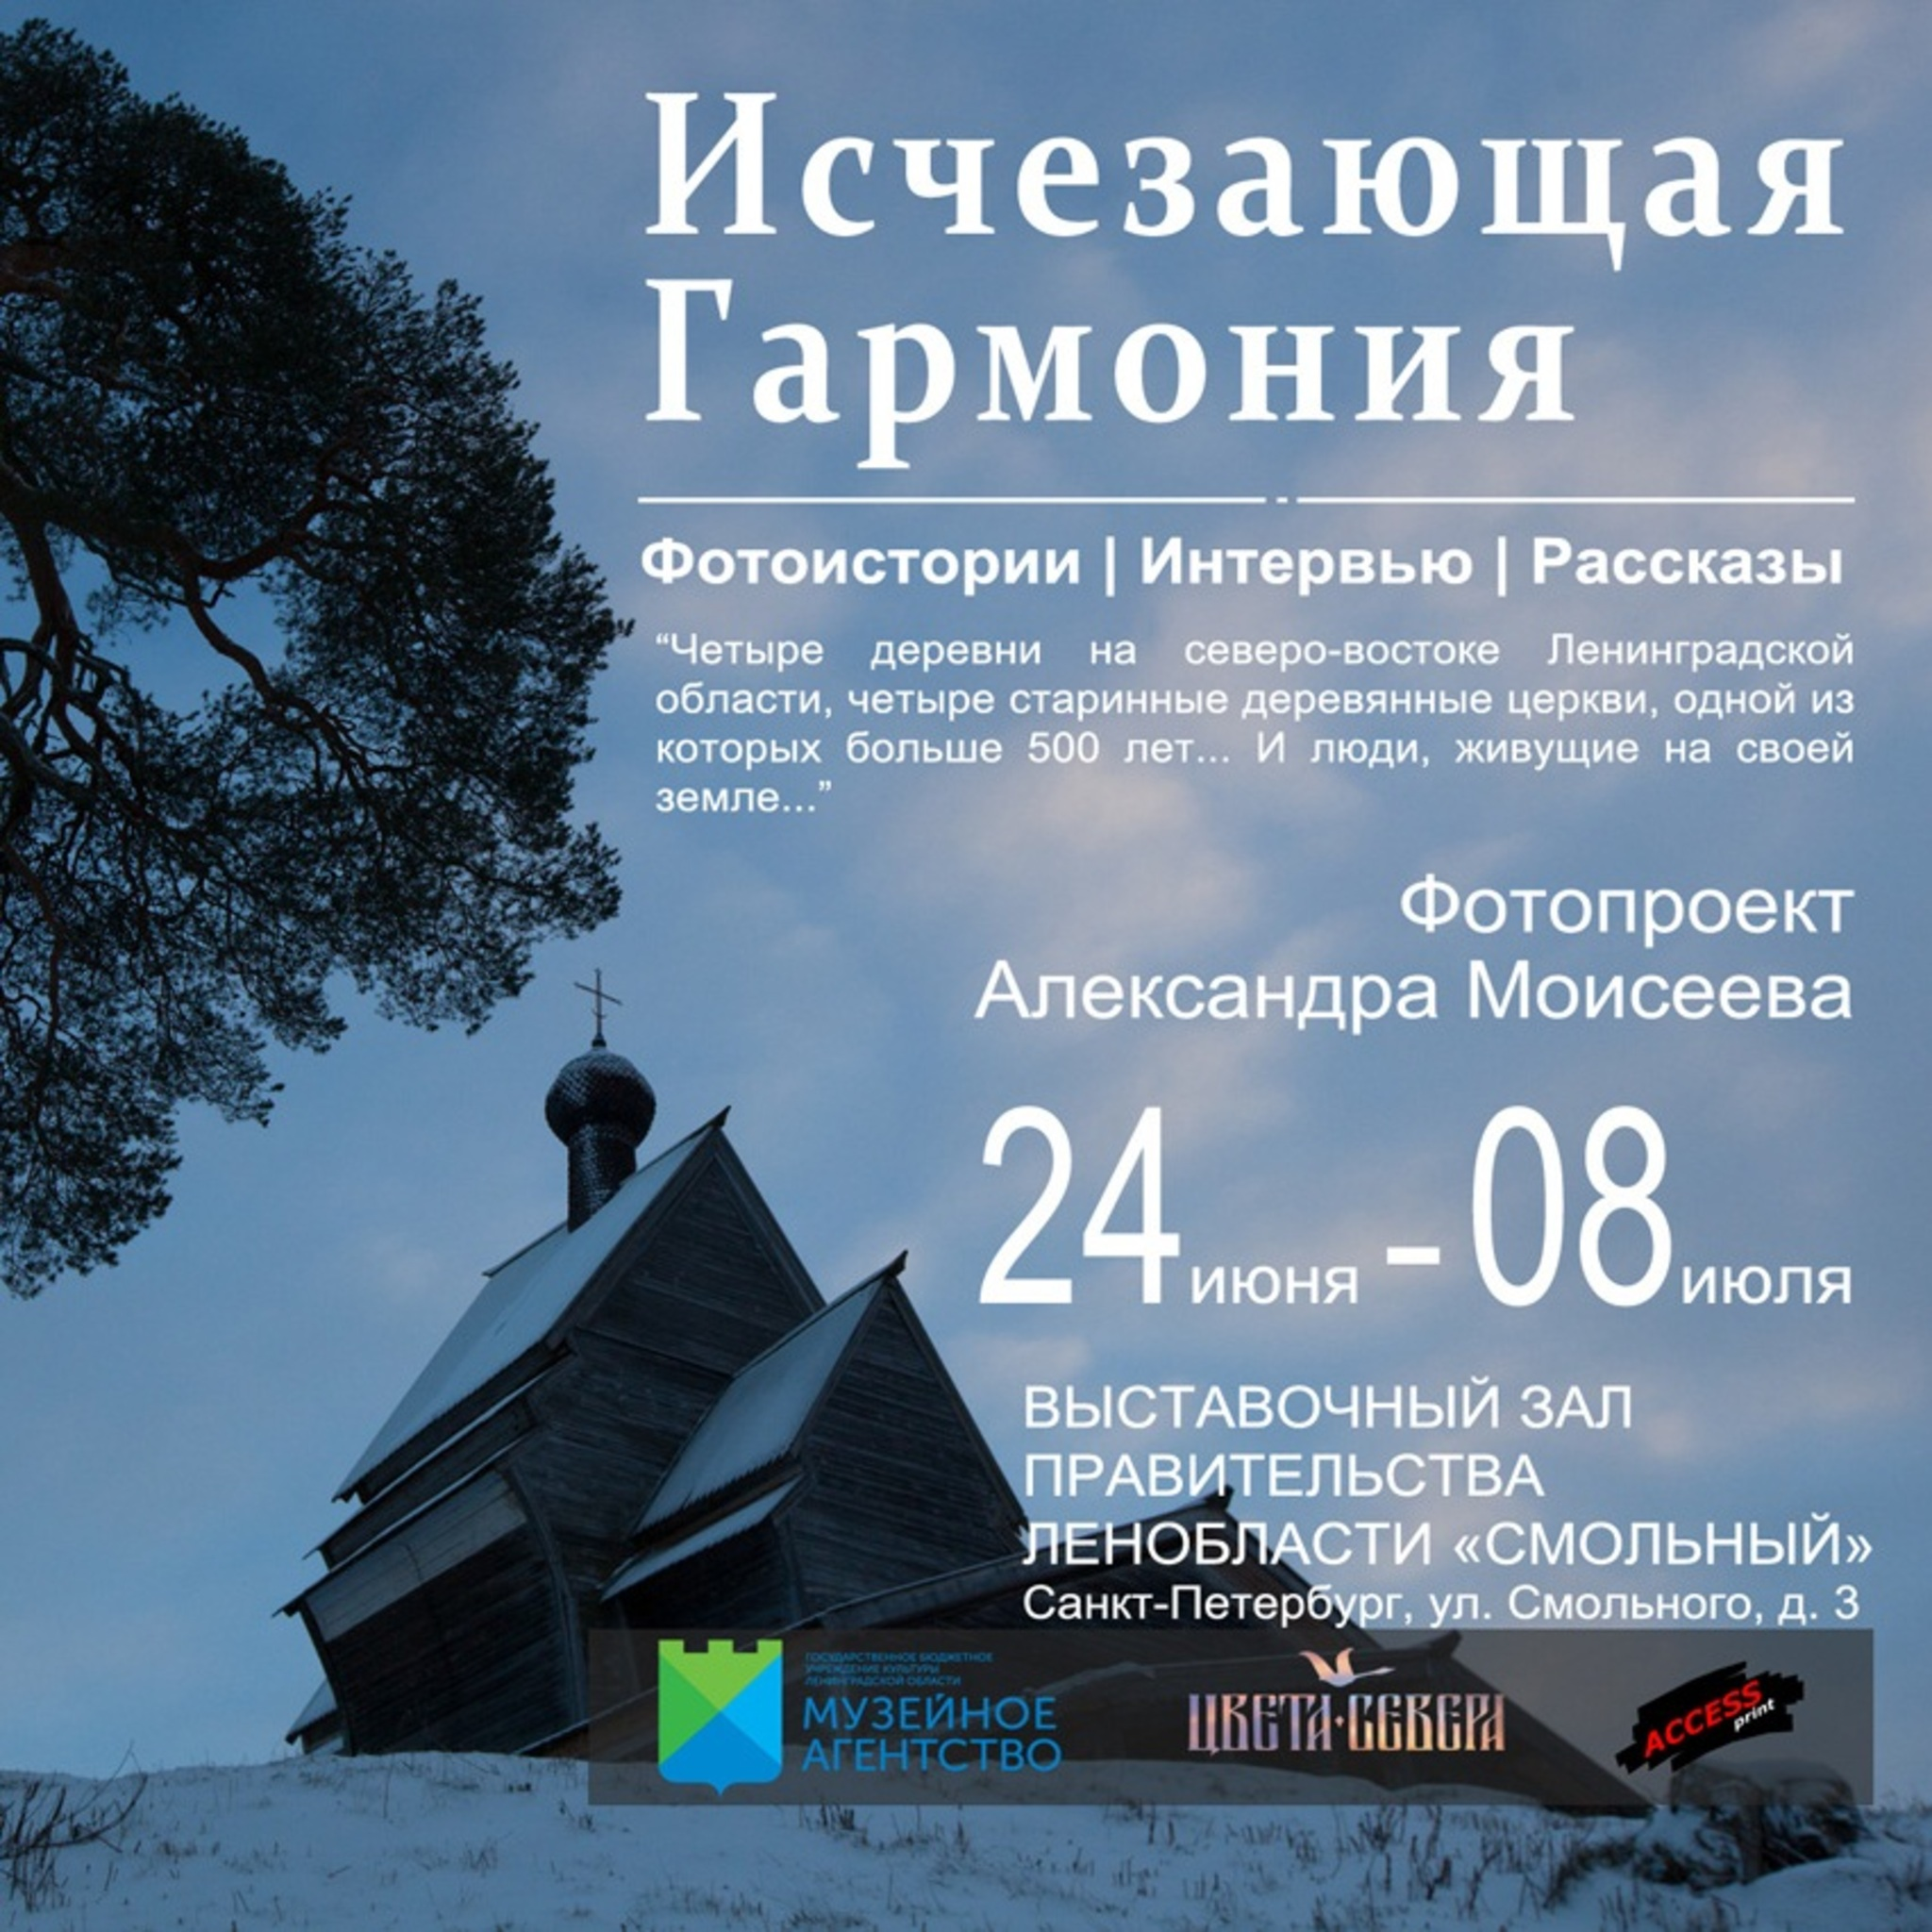 Photo exhibition of Alexander Mosaic Disappearing Harmony